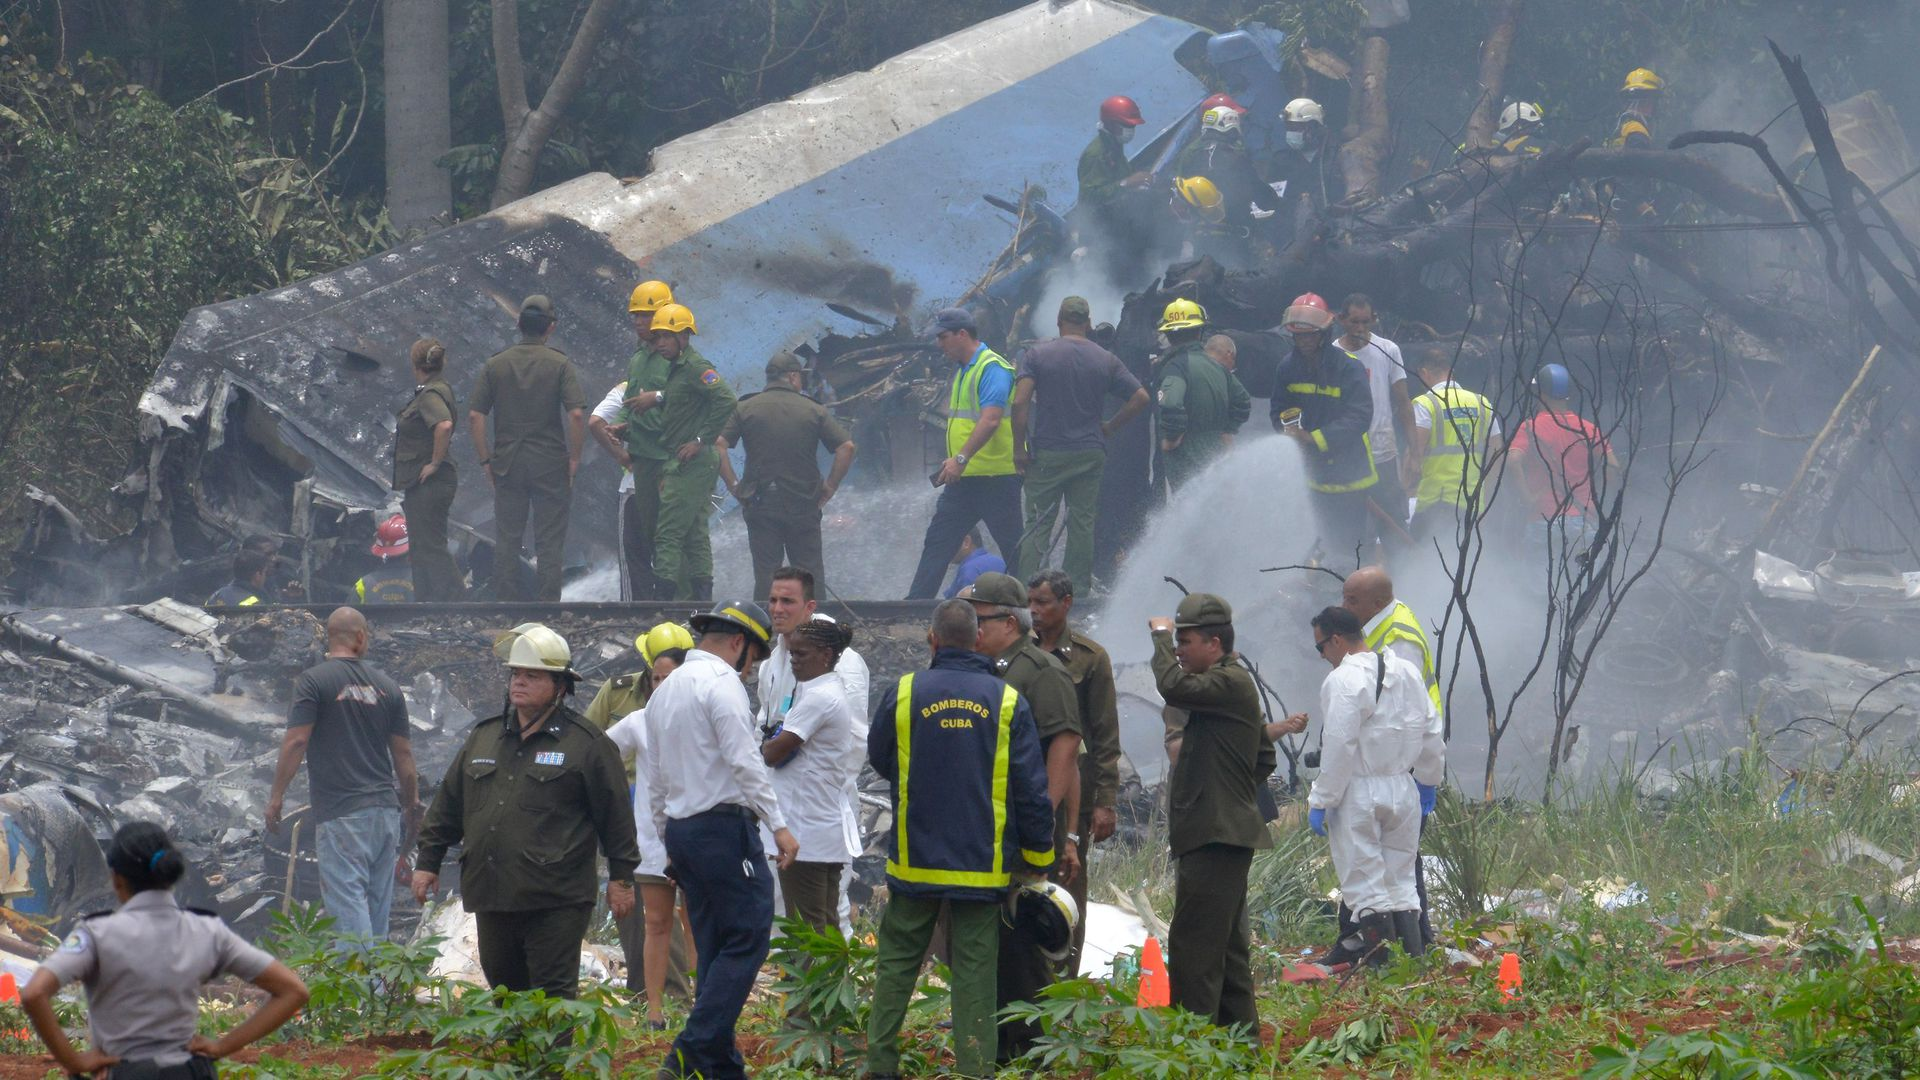 Rescue workers arrive to the scene of the plane crash close to the Havana Airport, in Cuba